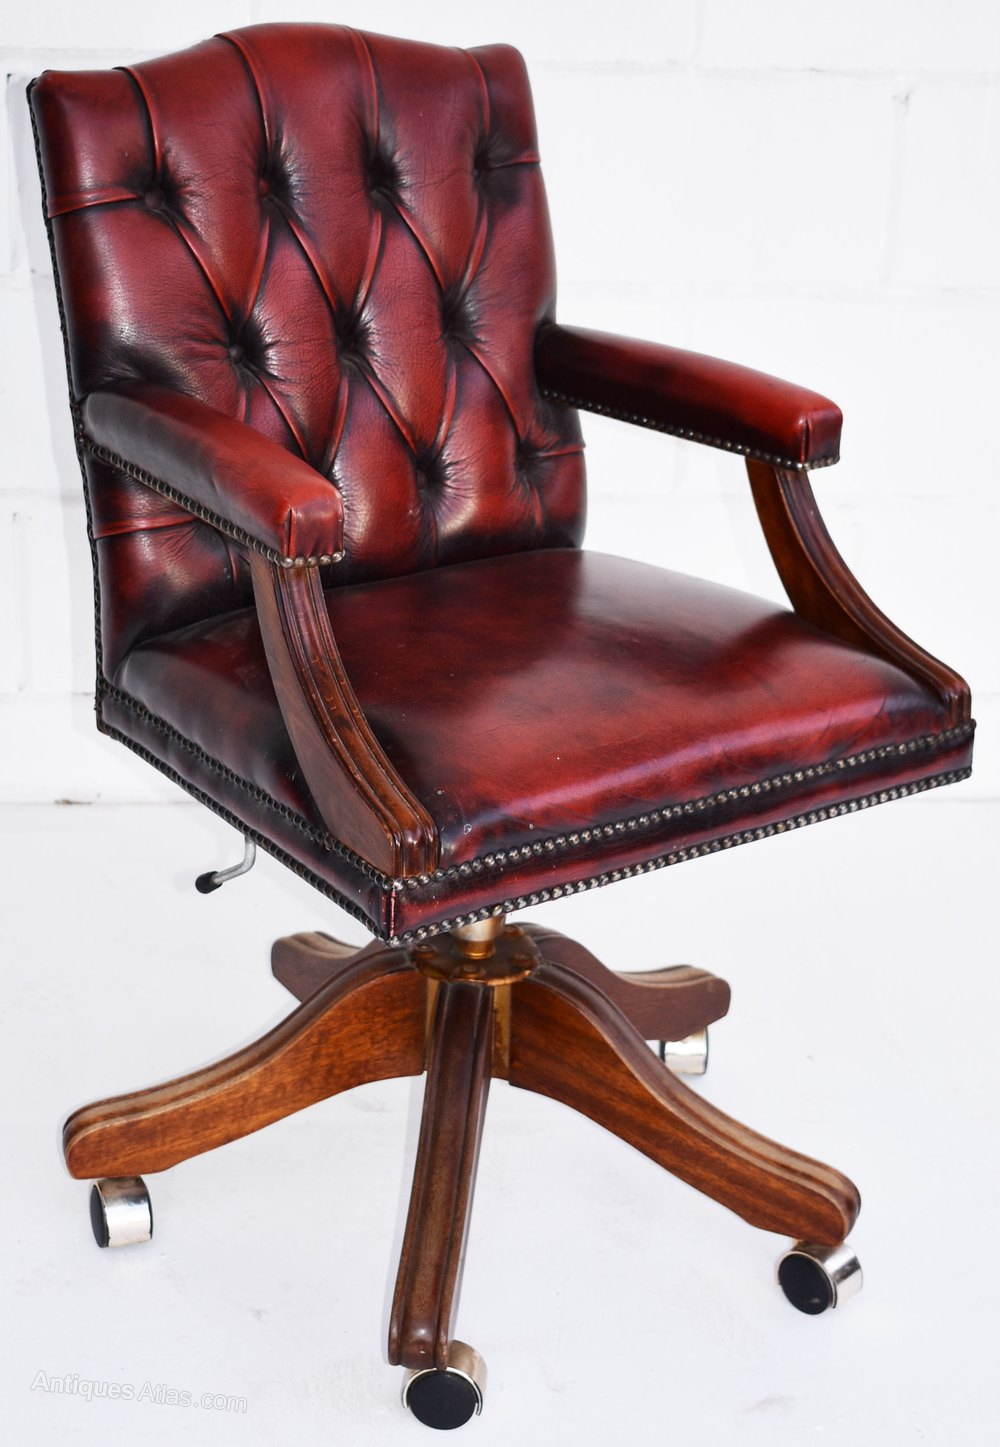 Vintage Ox Blood Red Leather Desk Chair ...